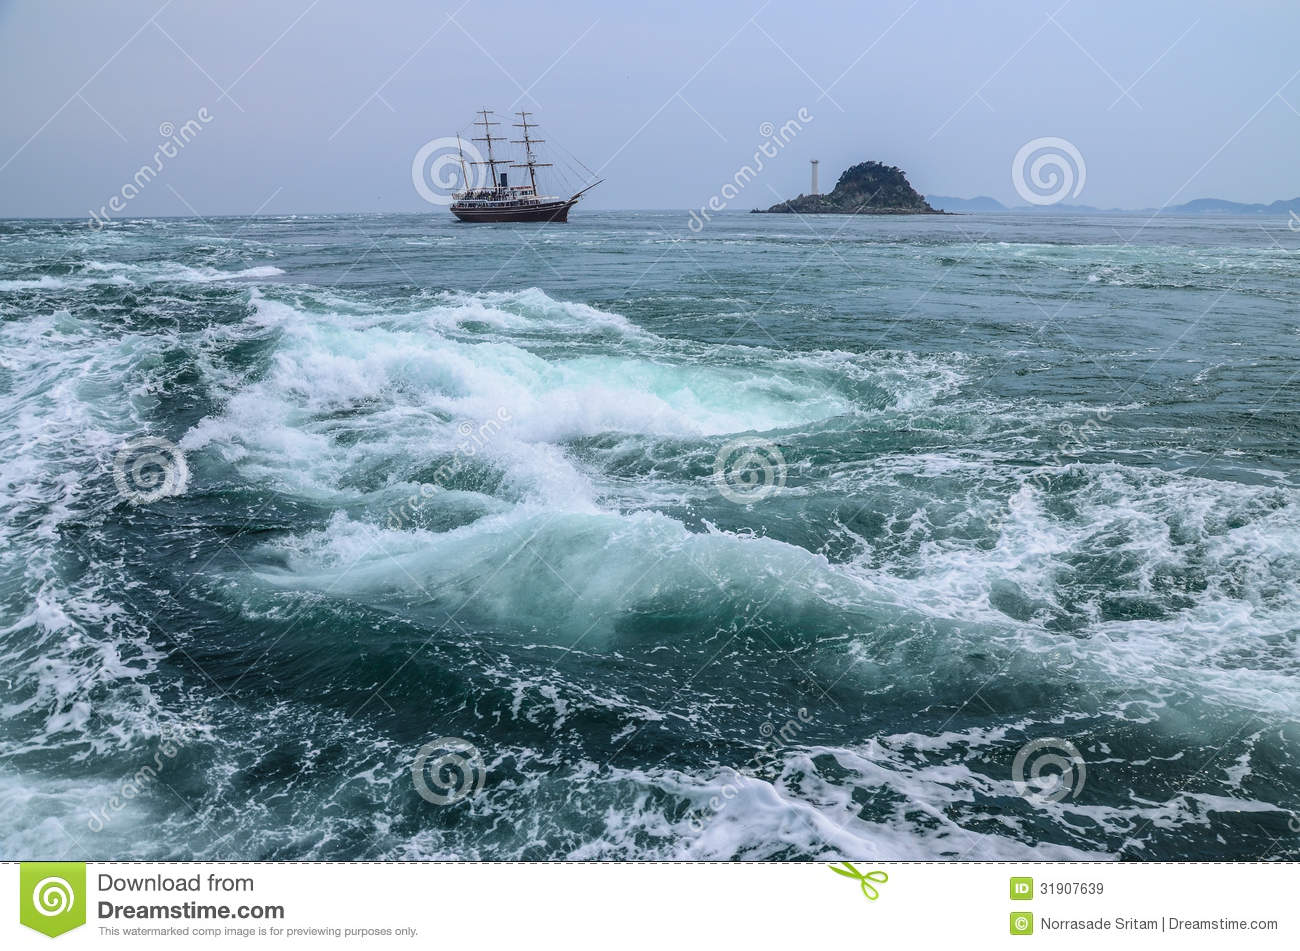 Naruto Whirlpools Royalty Free Stock Images.